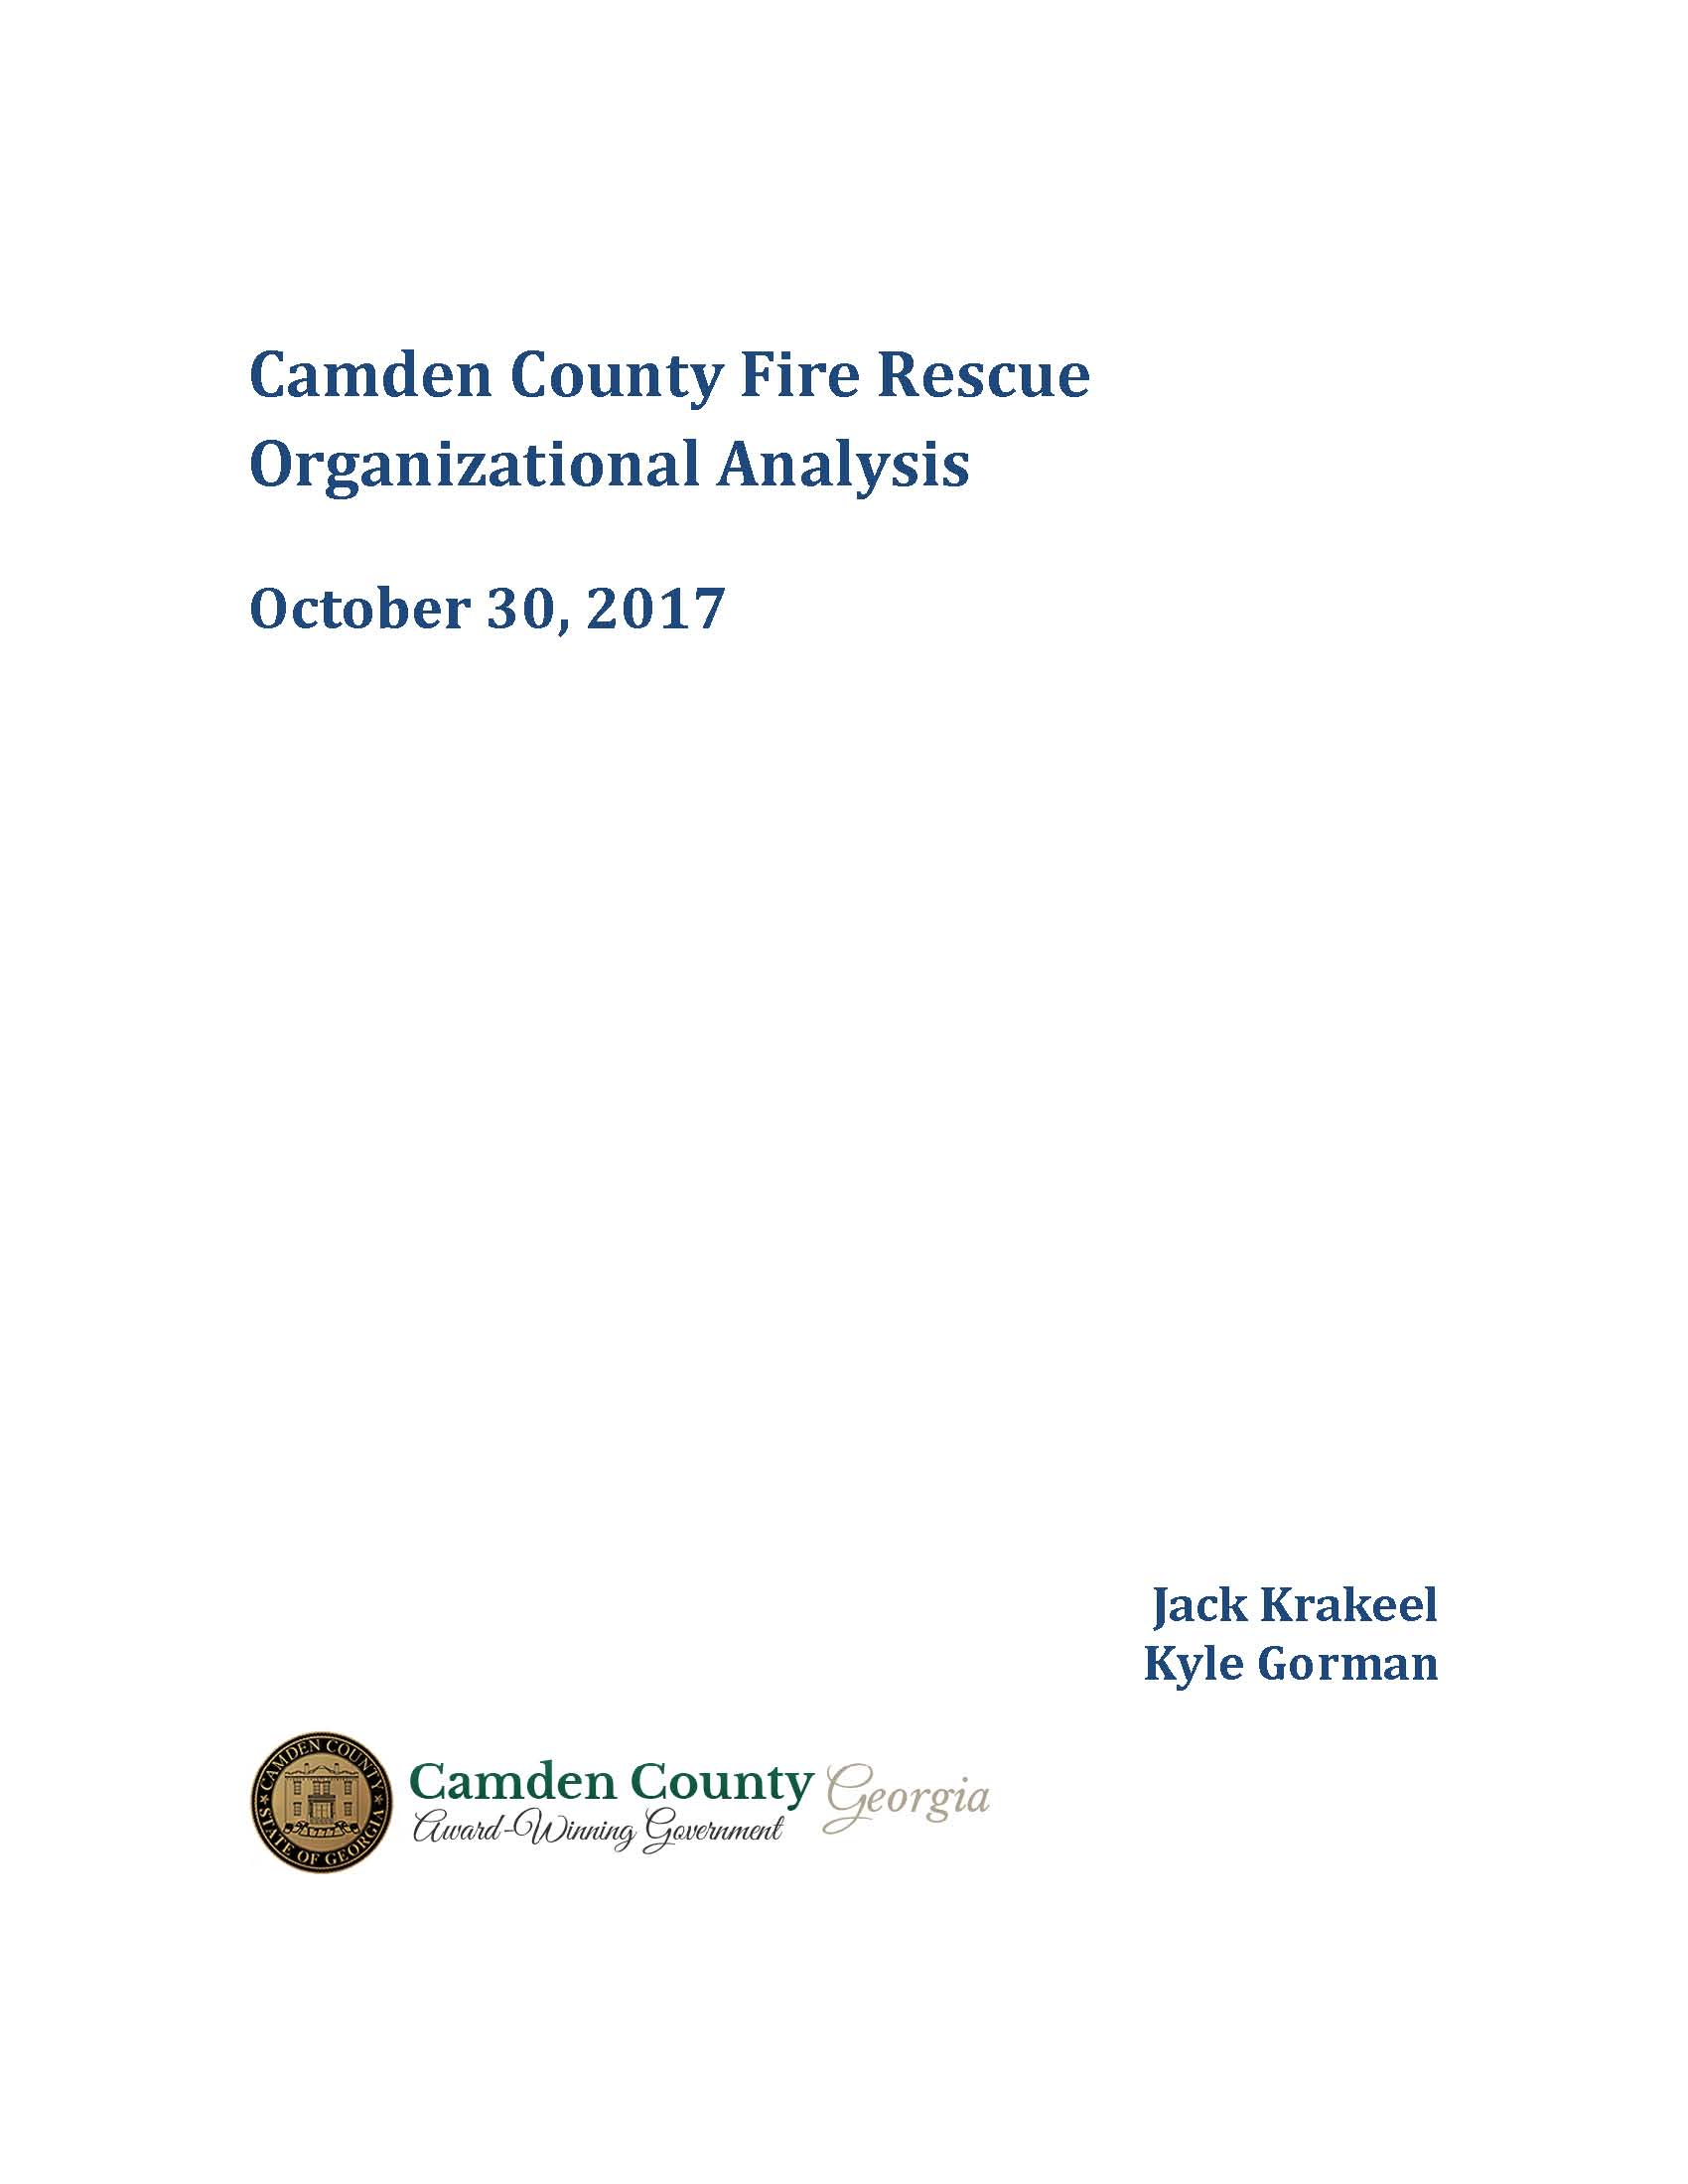 Camden County Fire Rescue Organizational Analysis